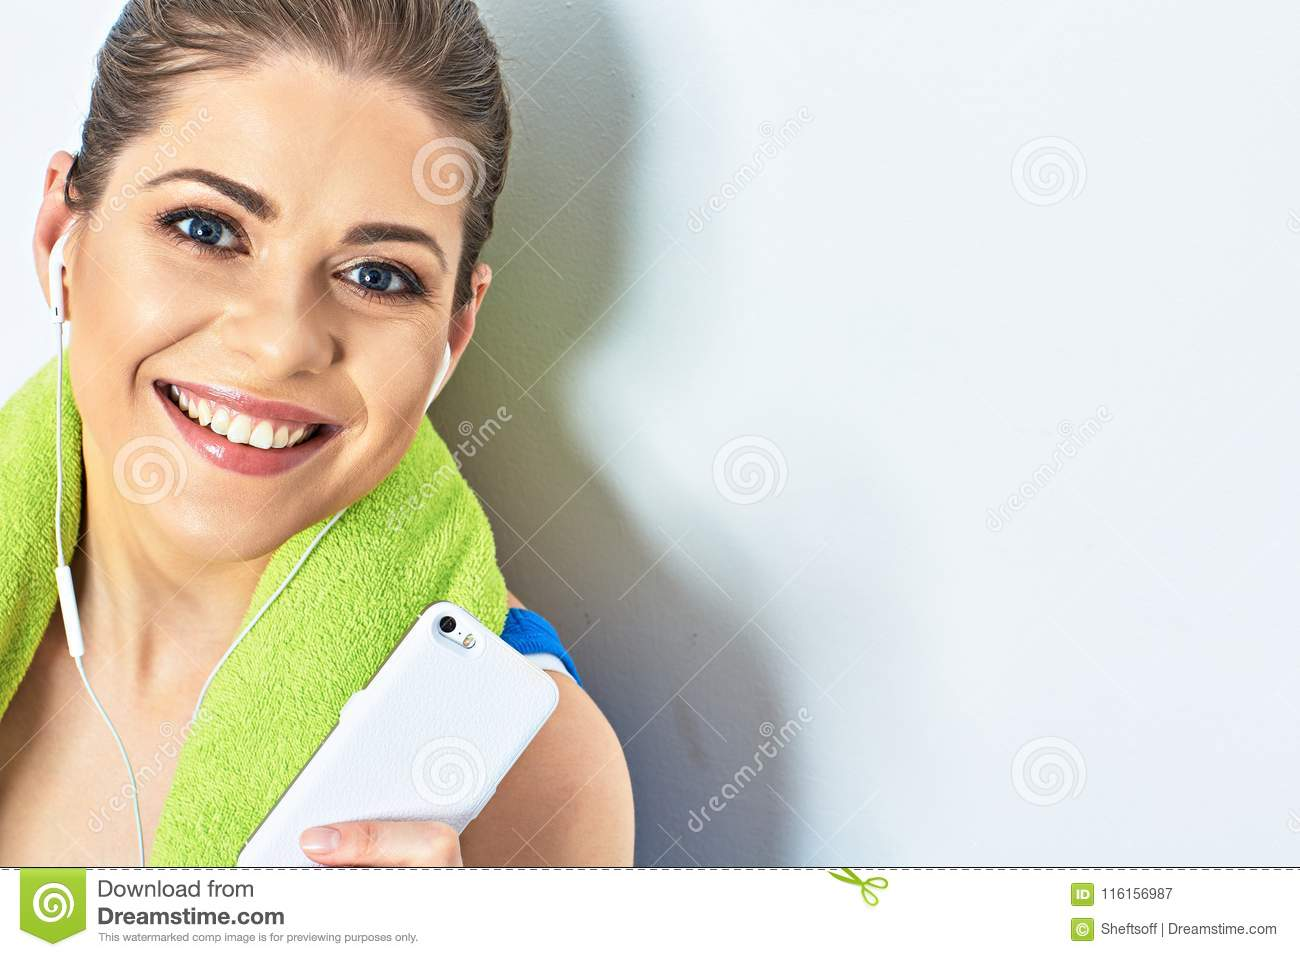 beeg toothy smile. close up face portrait of teeth smile woman stock